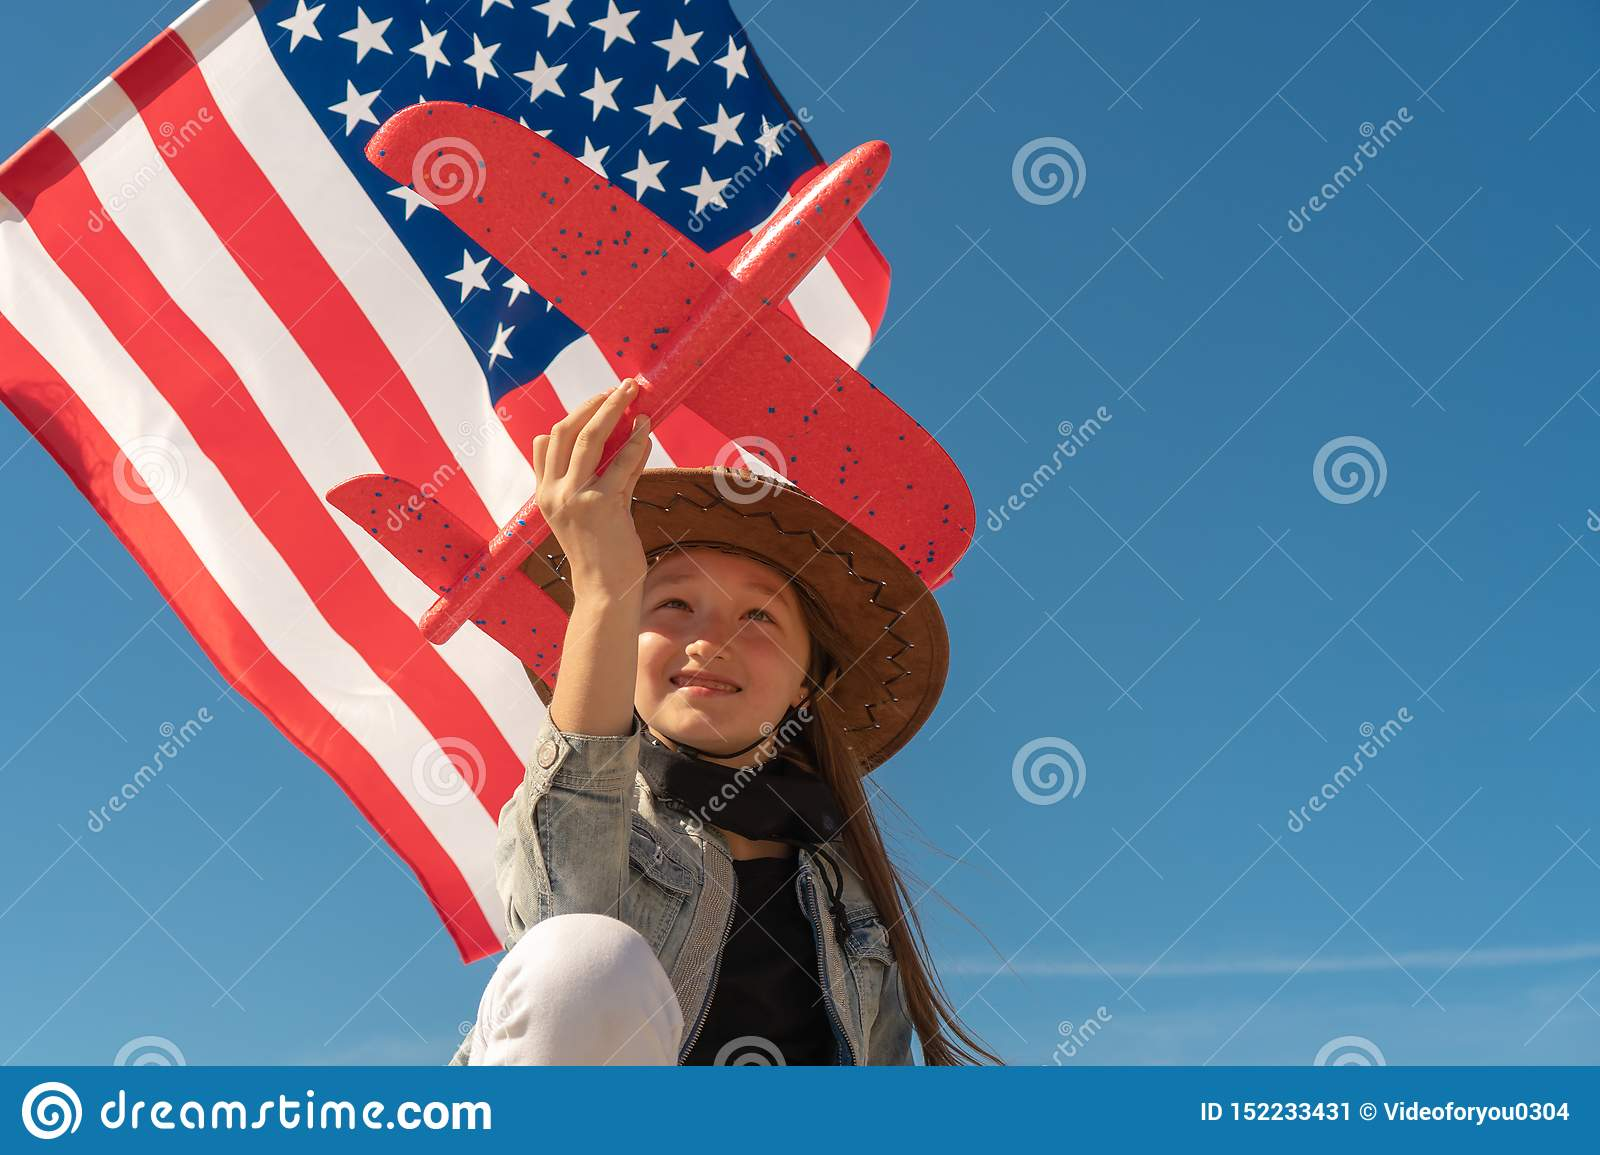 Independence Day.Beautiful girl in a cowboy hat on the background of the American flag is holding a red plane. USA celebrate 4th